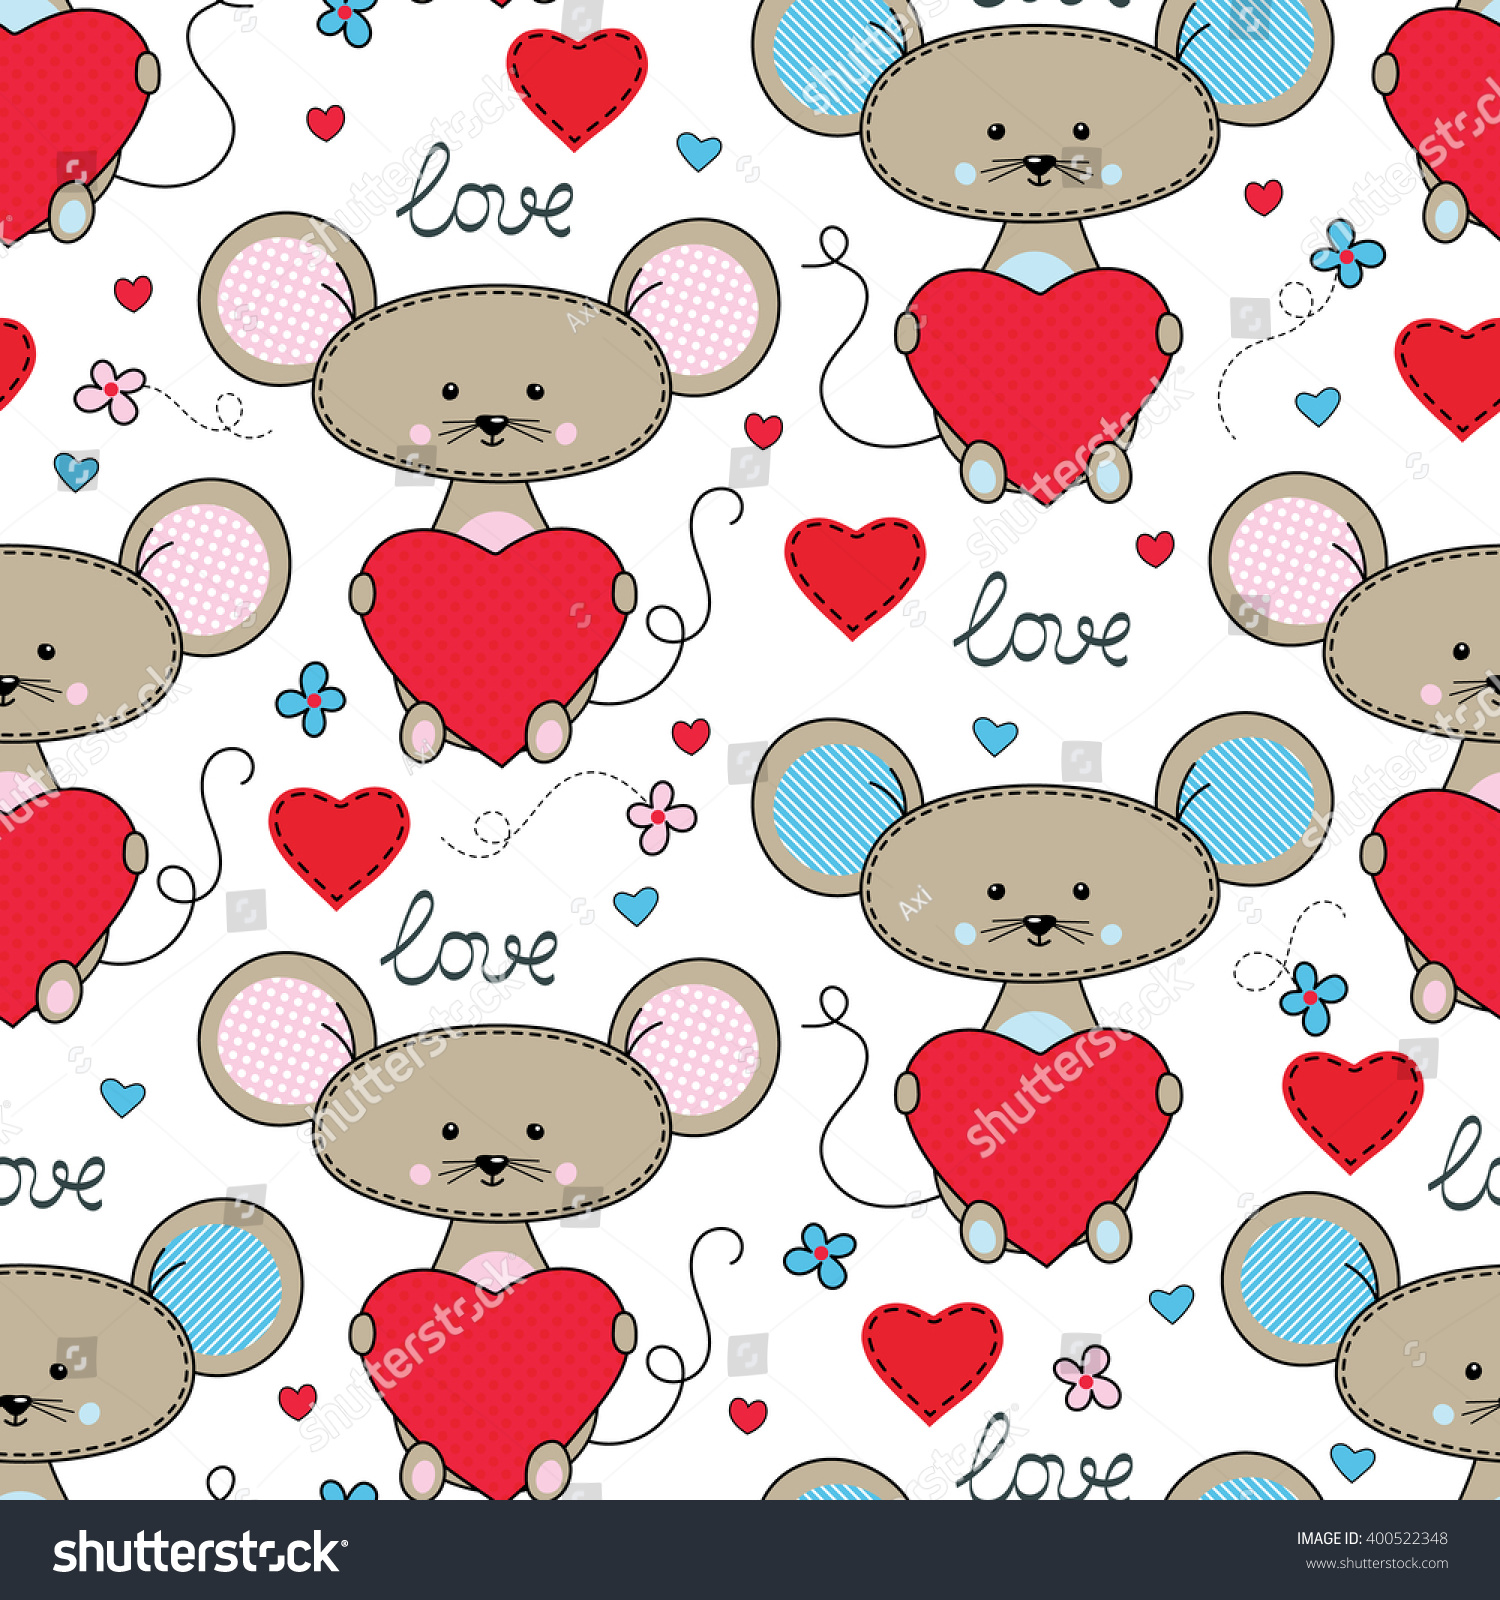 Cute Mouse With Heart Seamless Pattern. Cartoon Vector ...